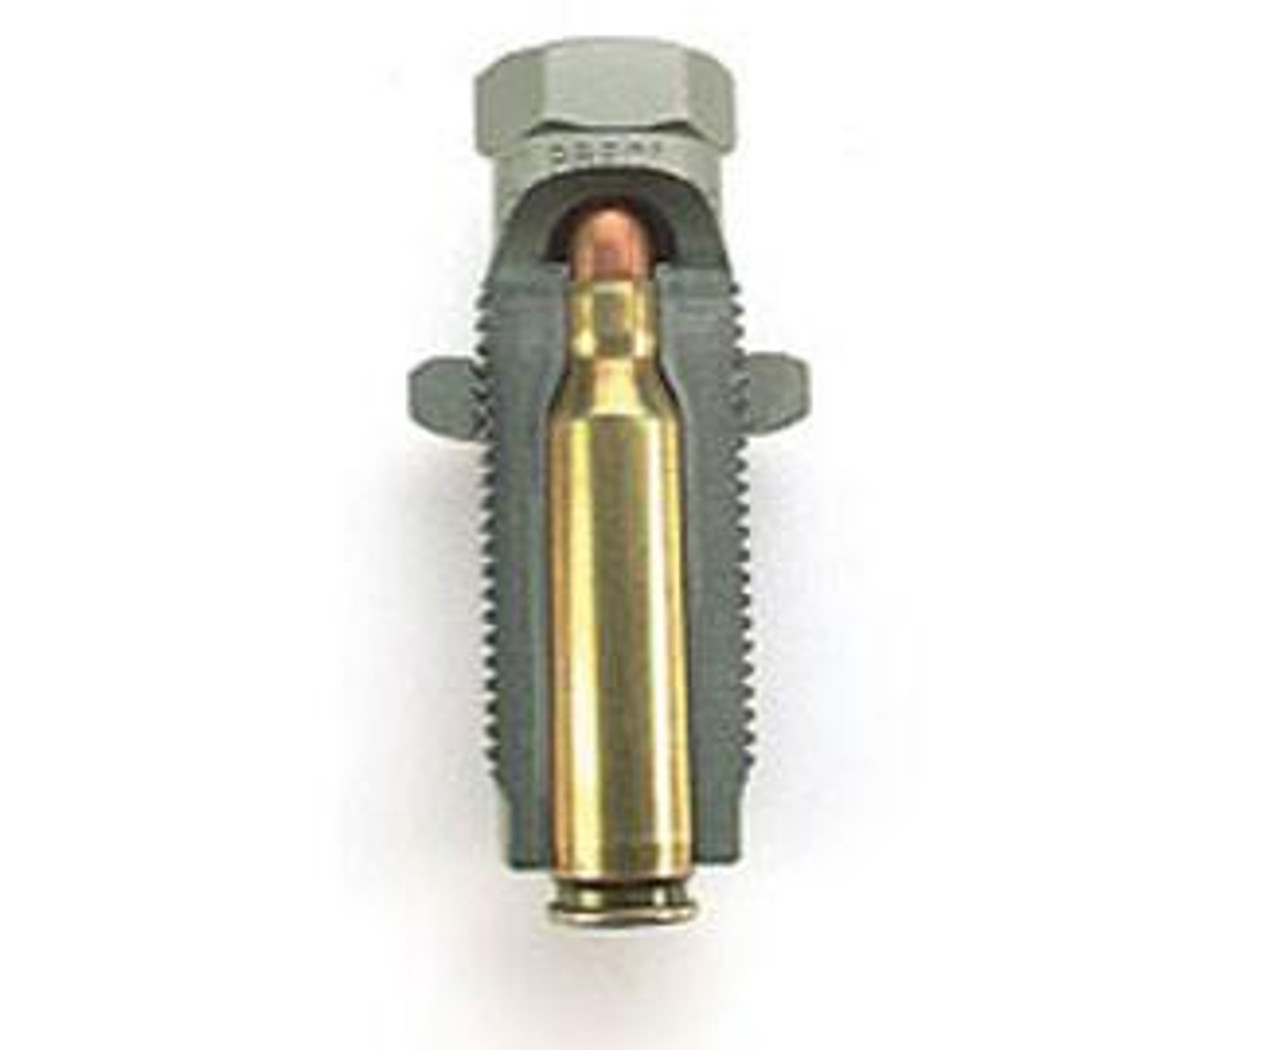 Dillon Rifle Taper Crimp Dies